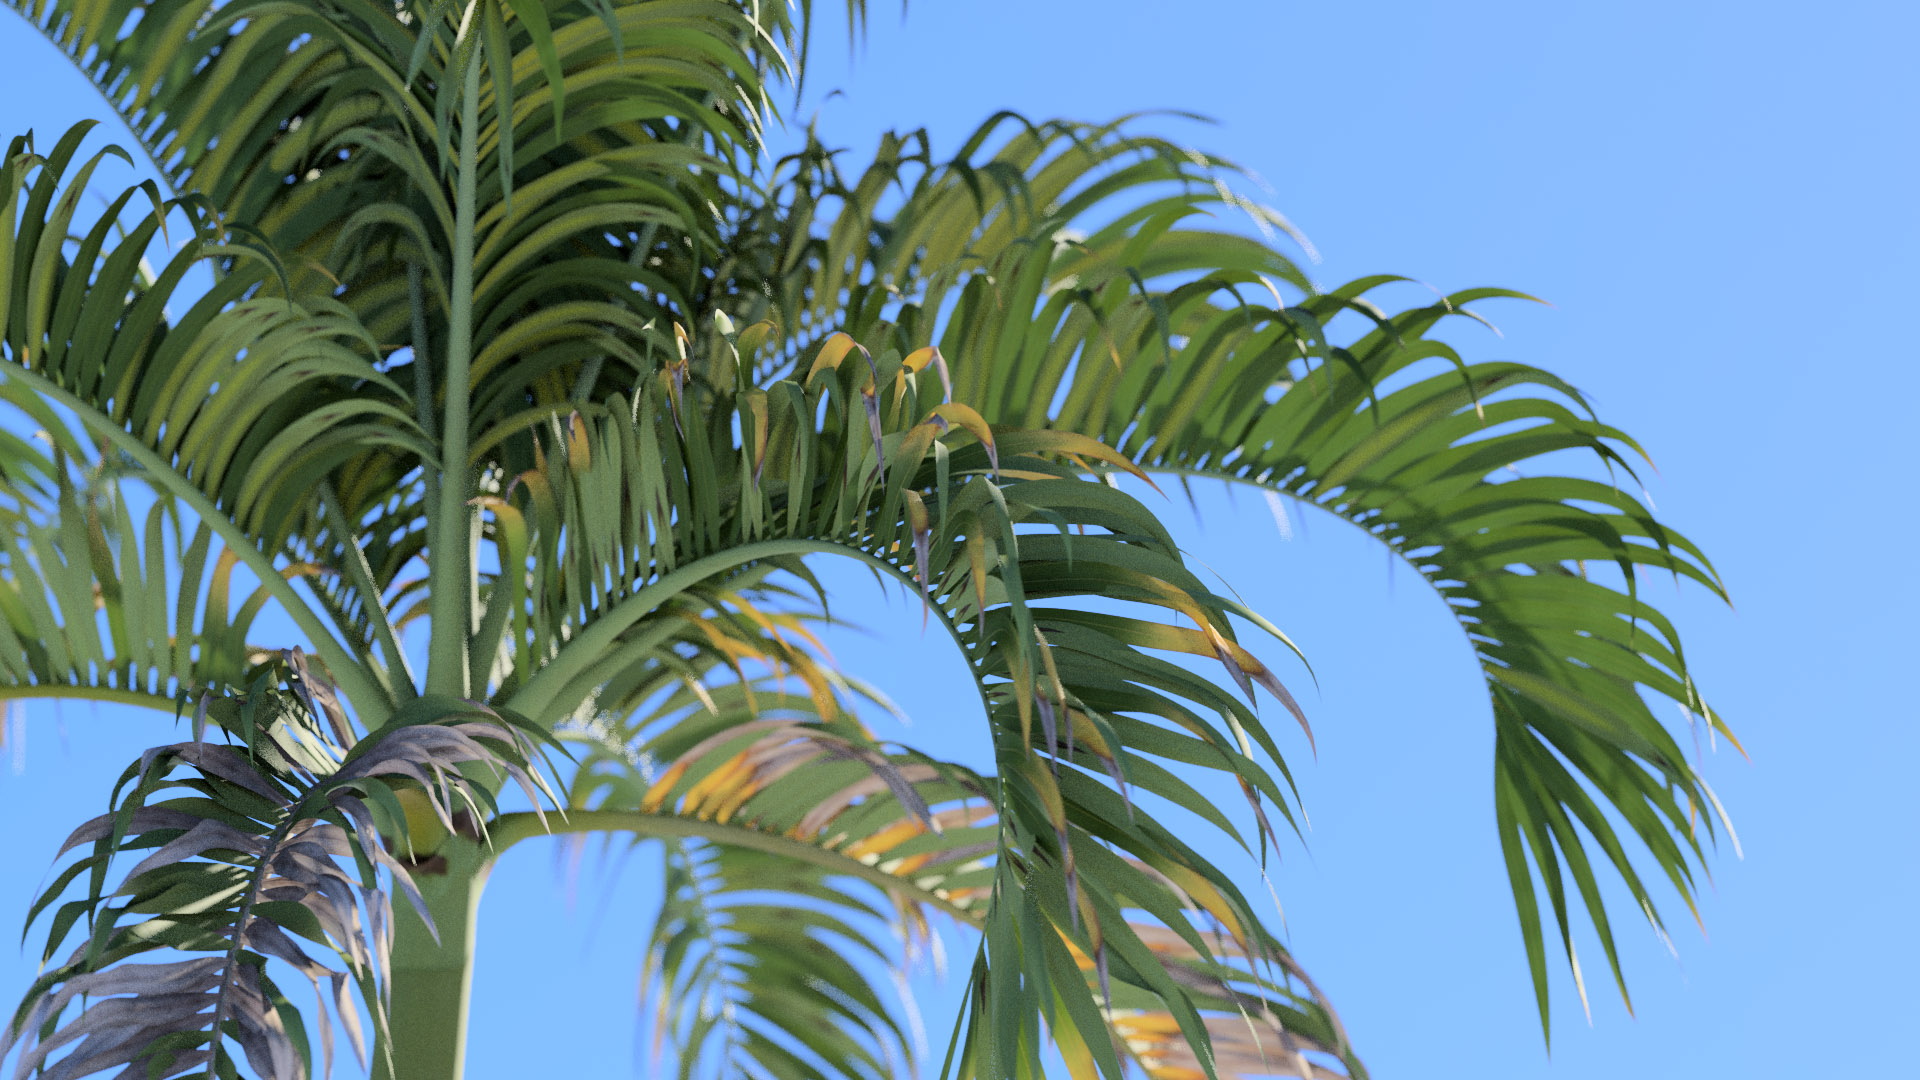 3D model of the Christmas palm Adonidia merrillii close-up